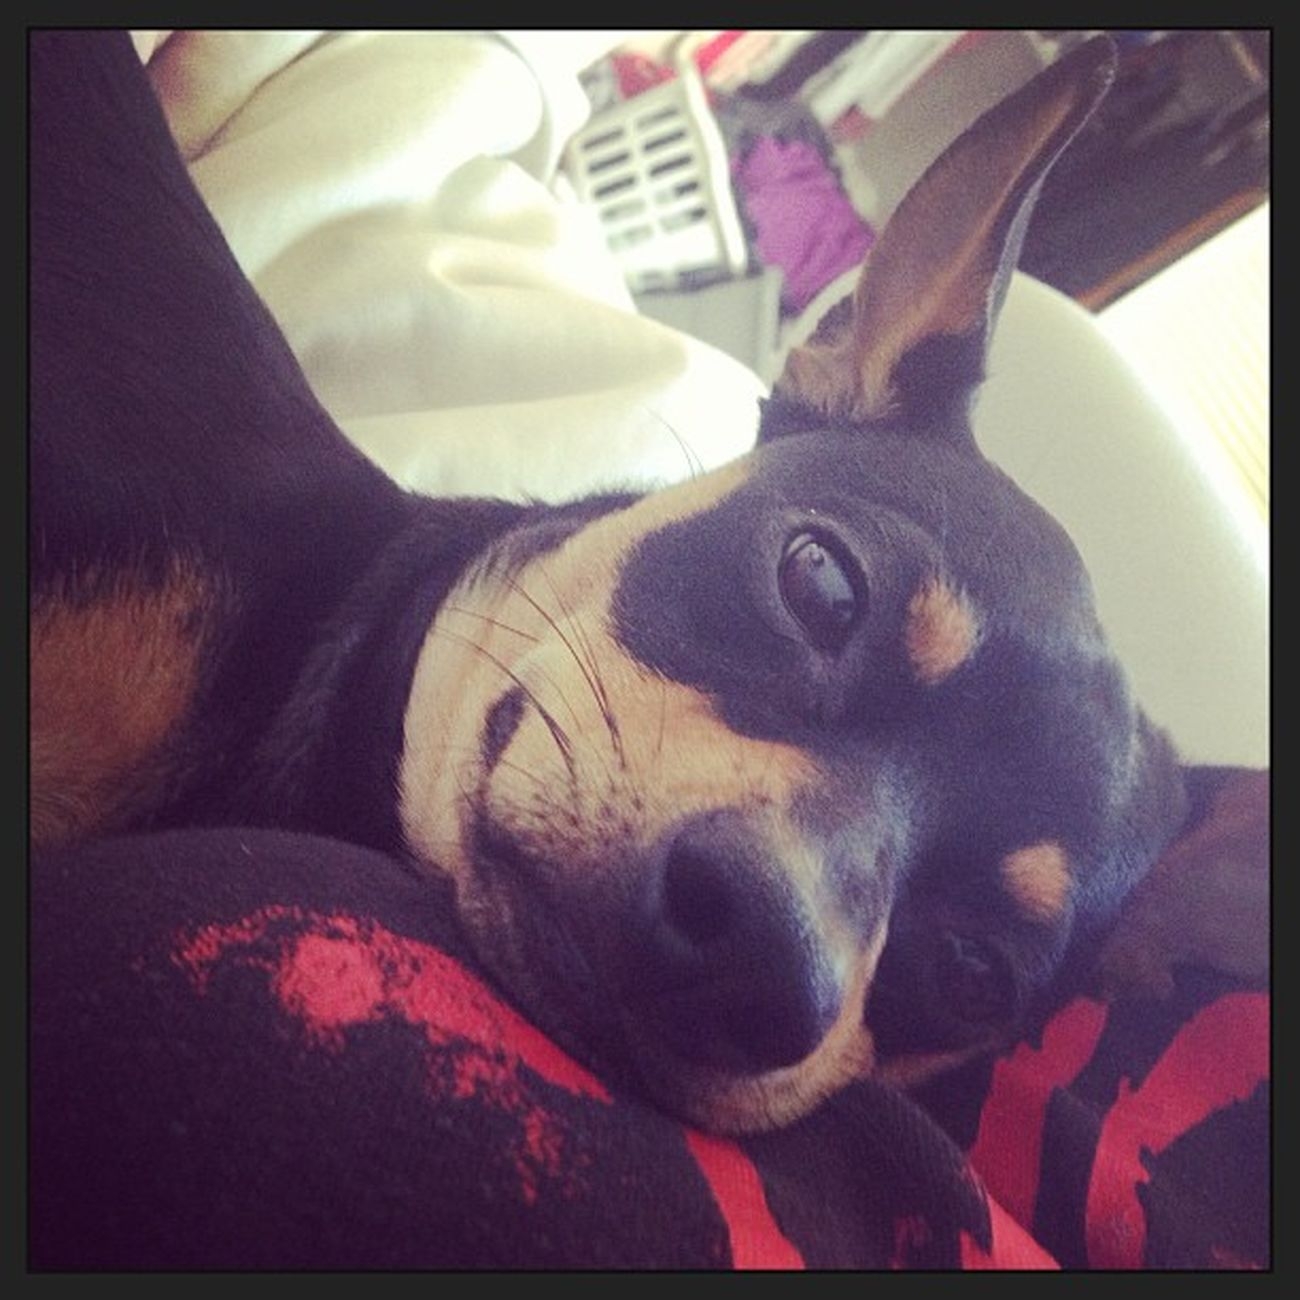 Boobcuddlin Cuddlemonster Cuddlin Korntshirt squishface happypup hunter minpin chihuahua terriermix